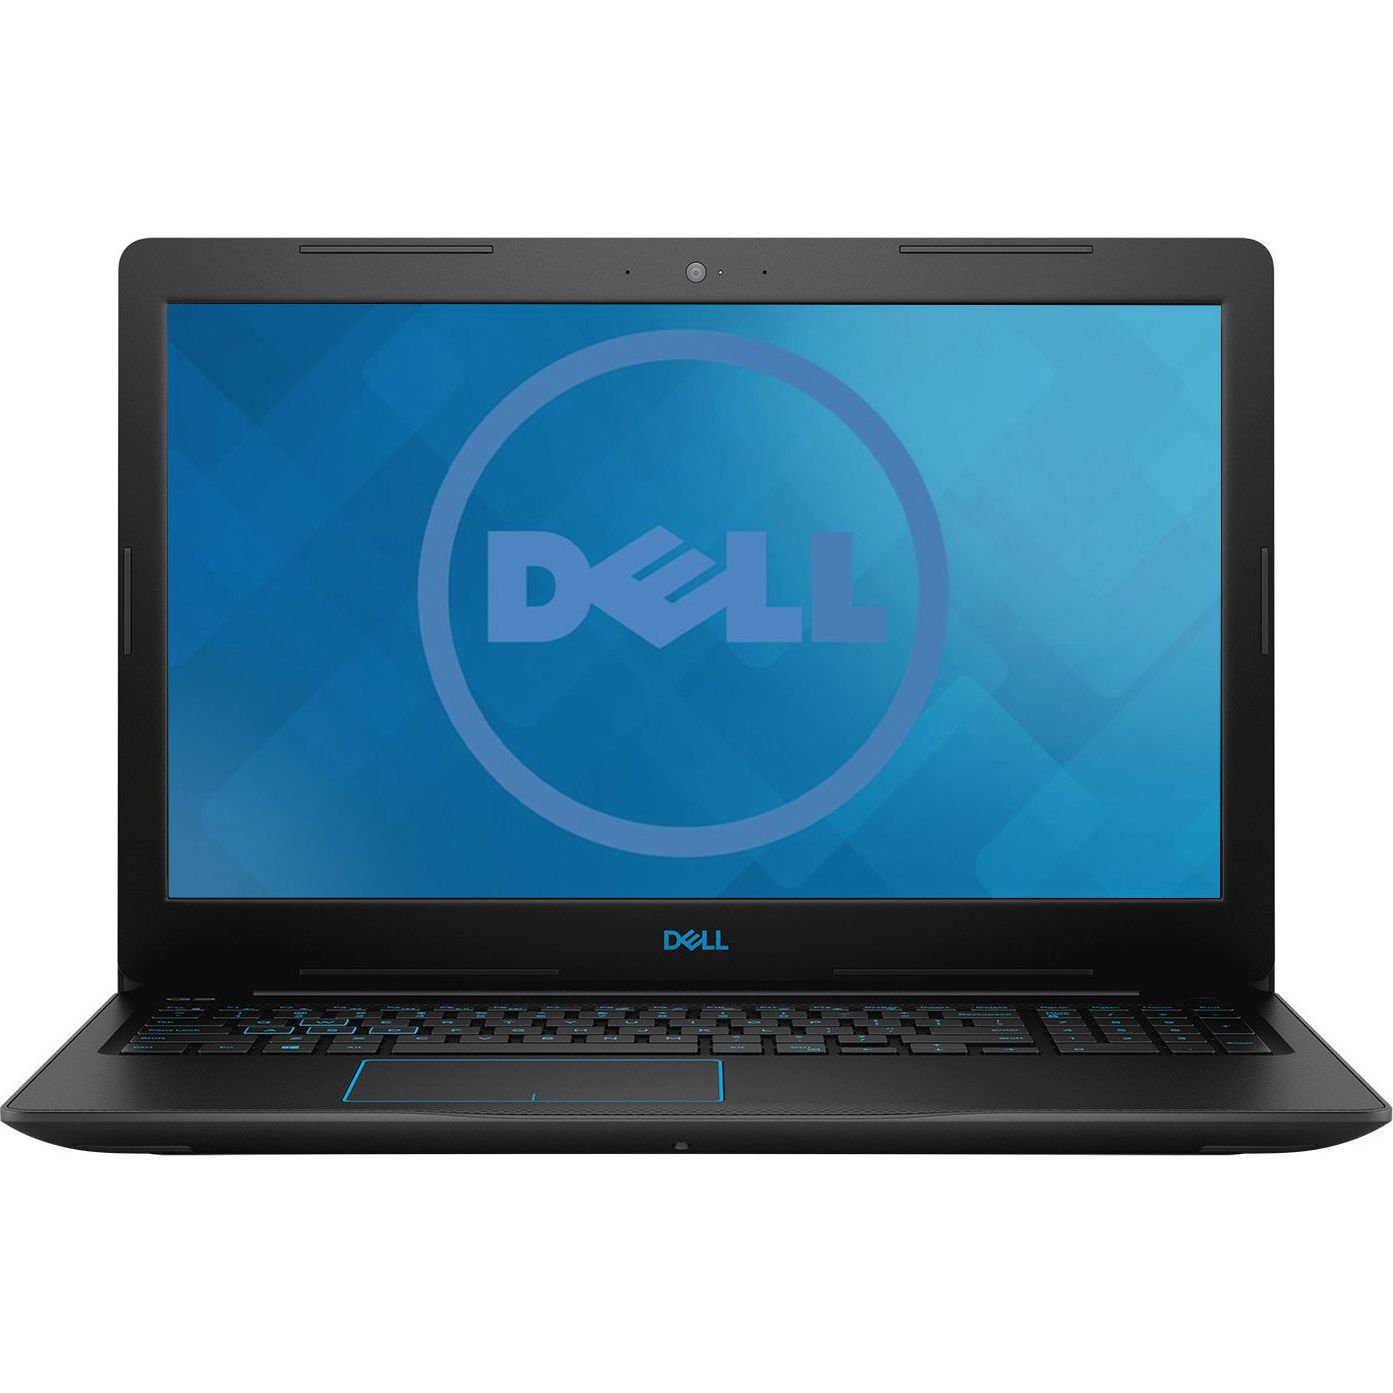 Notebook Dell G3 3579 15.6 Full HD Intel Core i5-8300H GTX 1050-4GB RAM 8GB SSHD 1TB + 8GB Windows 10 Home